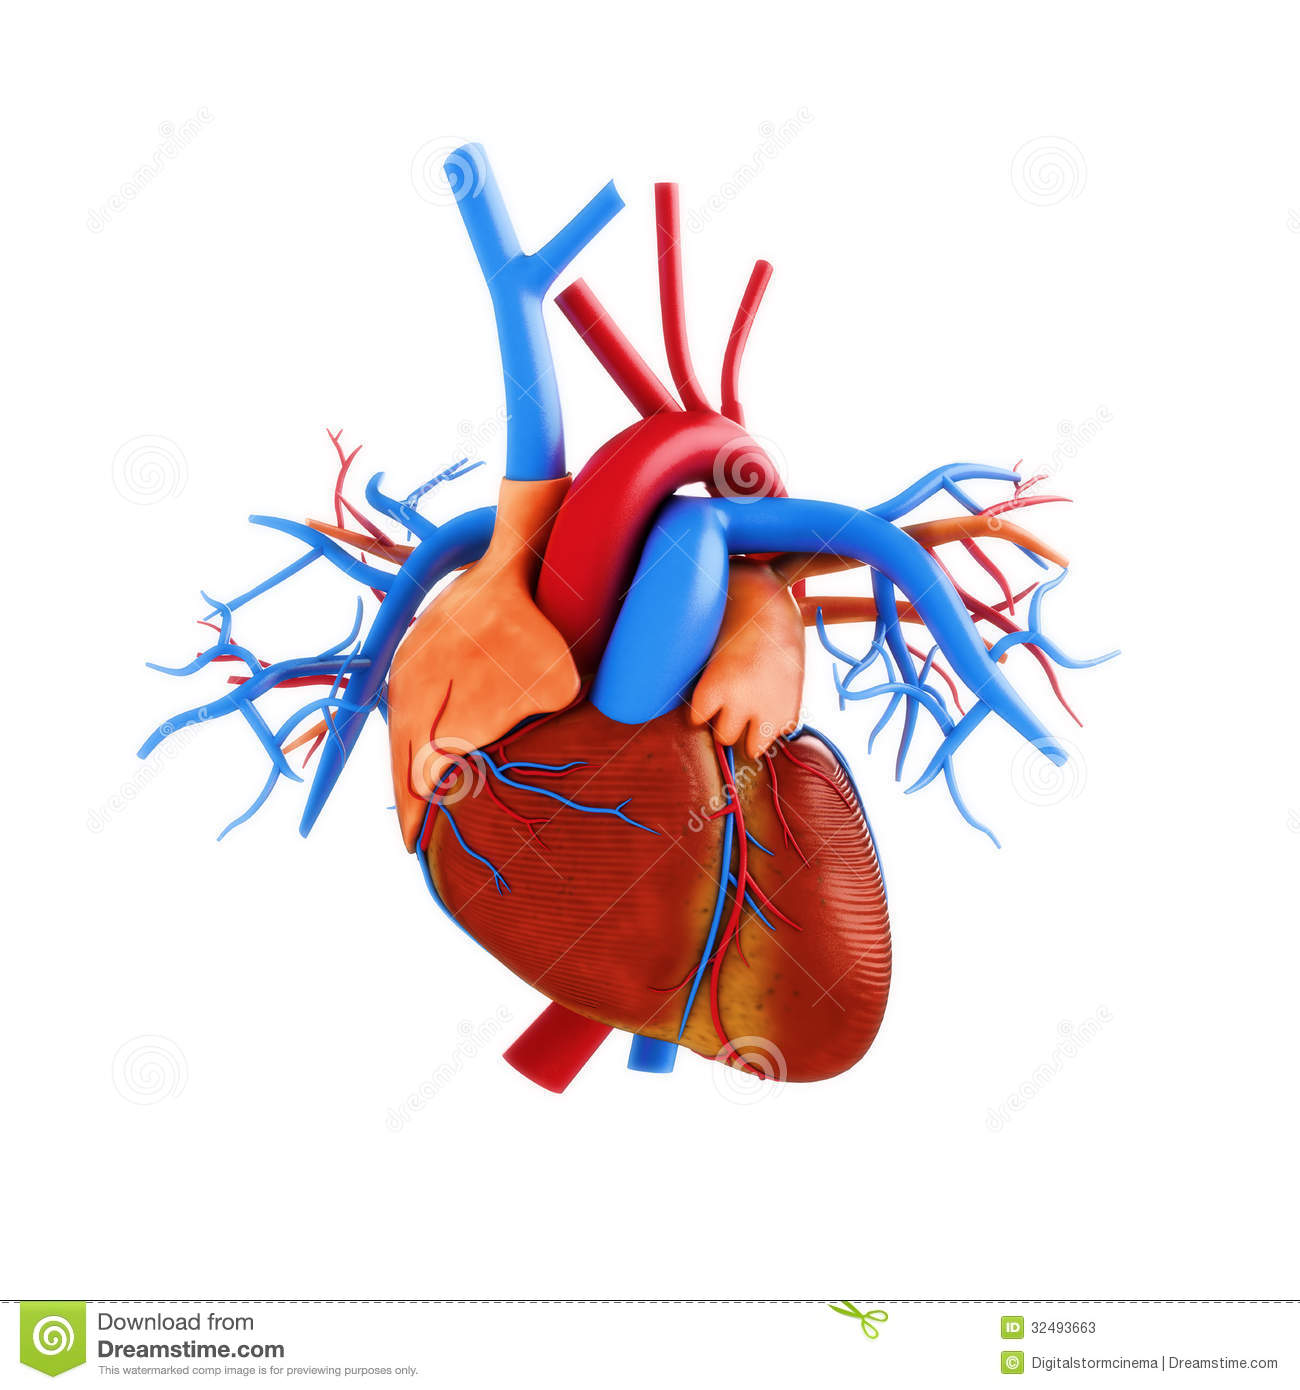 Anatomy Of Human Heart Pictures Wallpapers